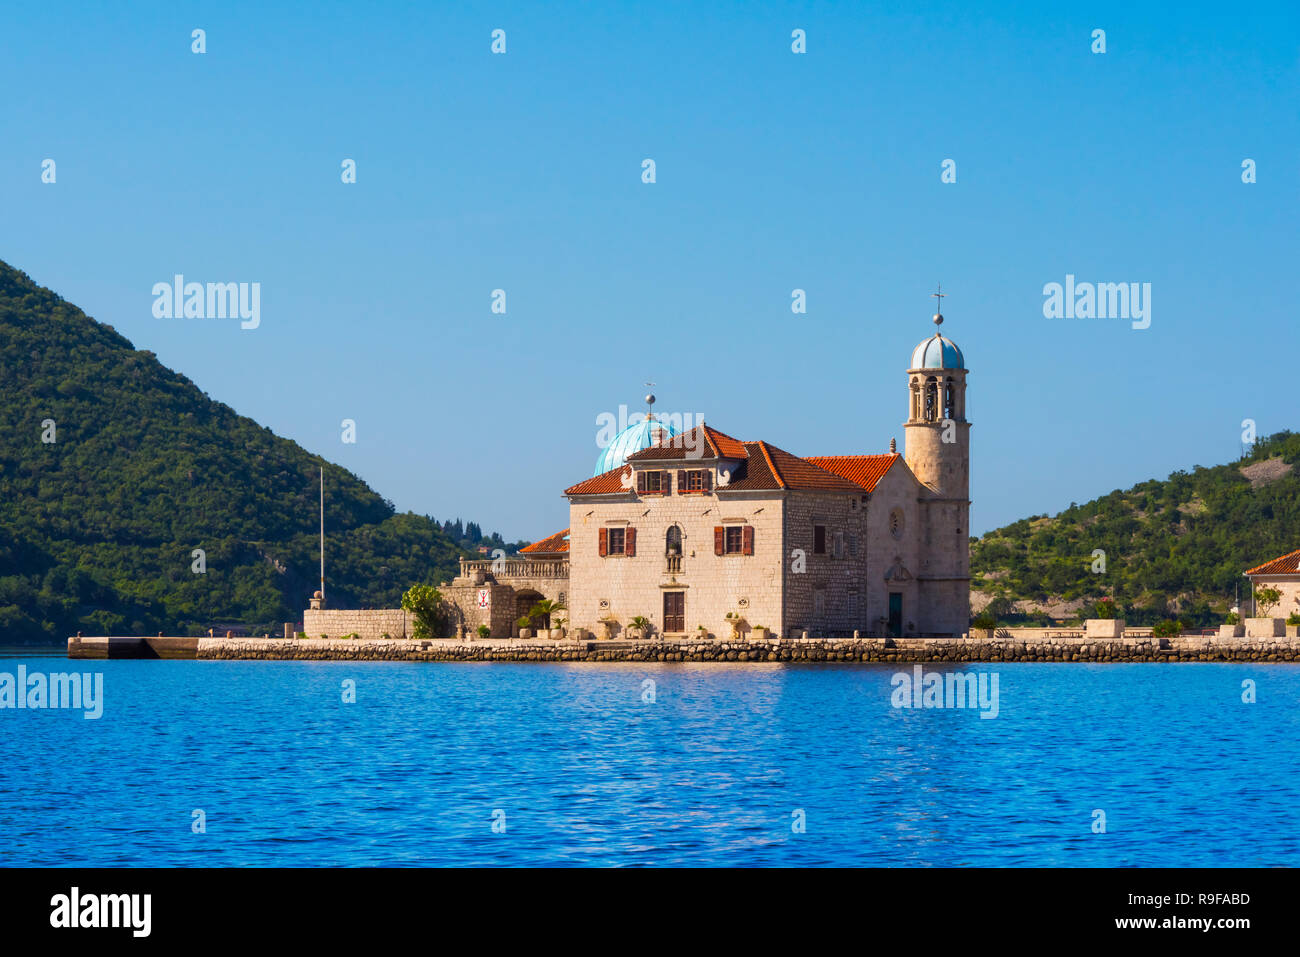 Our Lady of the Rocks, an artificial island, with the Roman Catholic Church of Our Lady of the Rocks, Perast, Montenegro Stock Photo